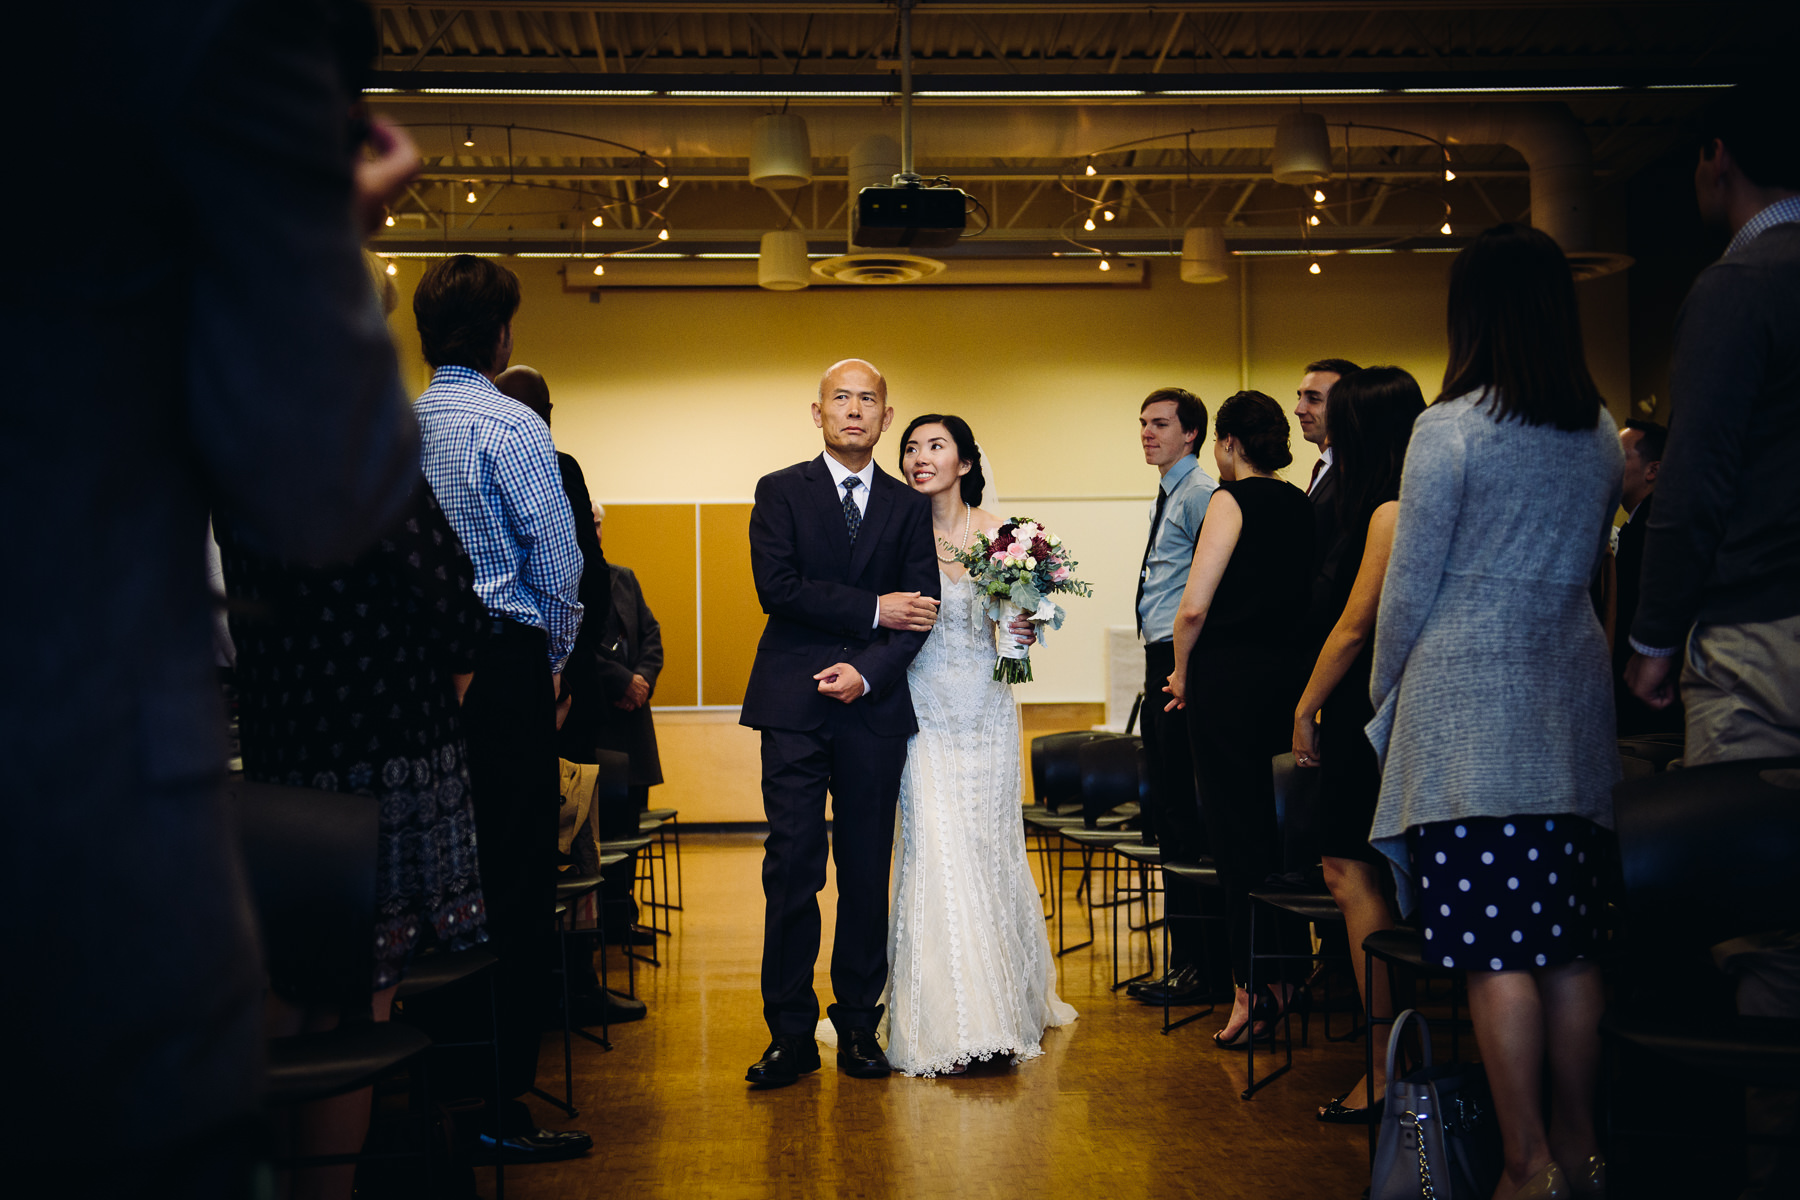 mercer island community event center wedding ceremony